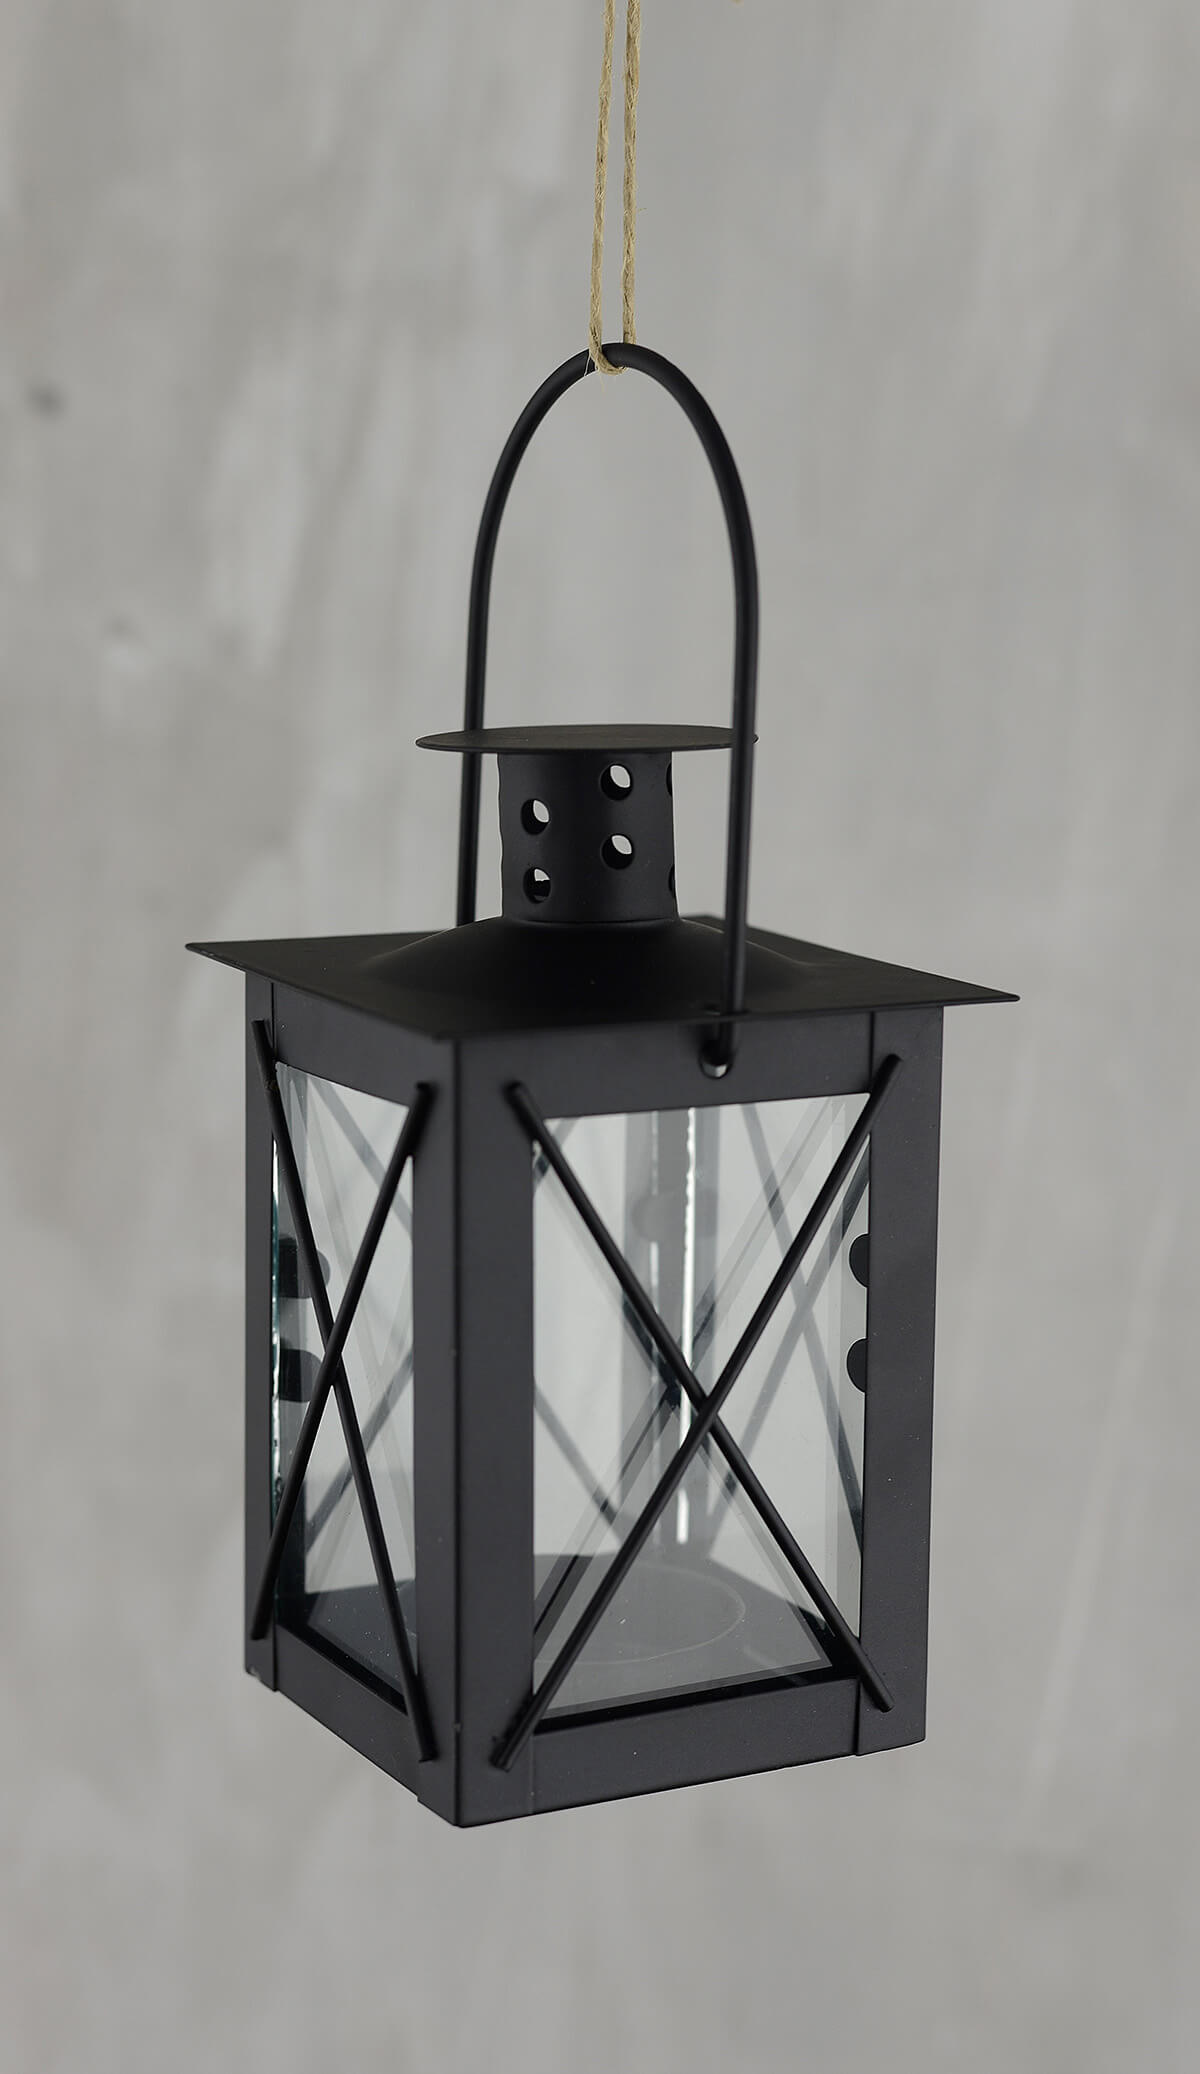 6 black metal u0026 glass tealight lanterns 5in